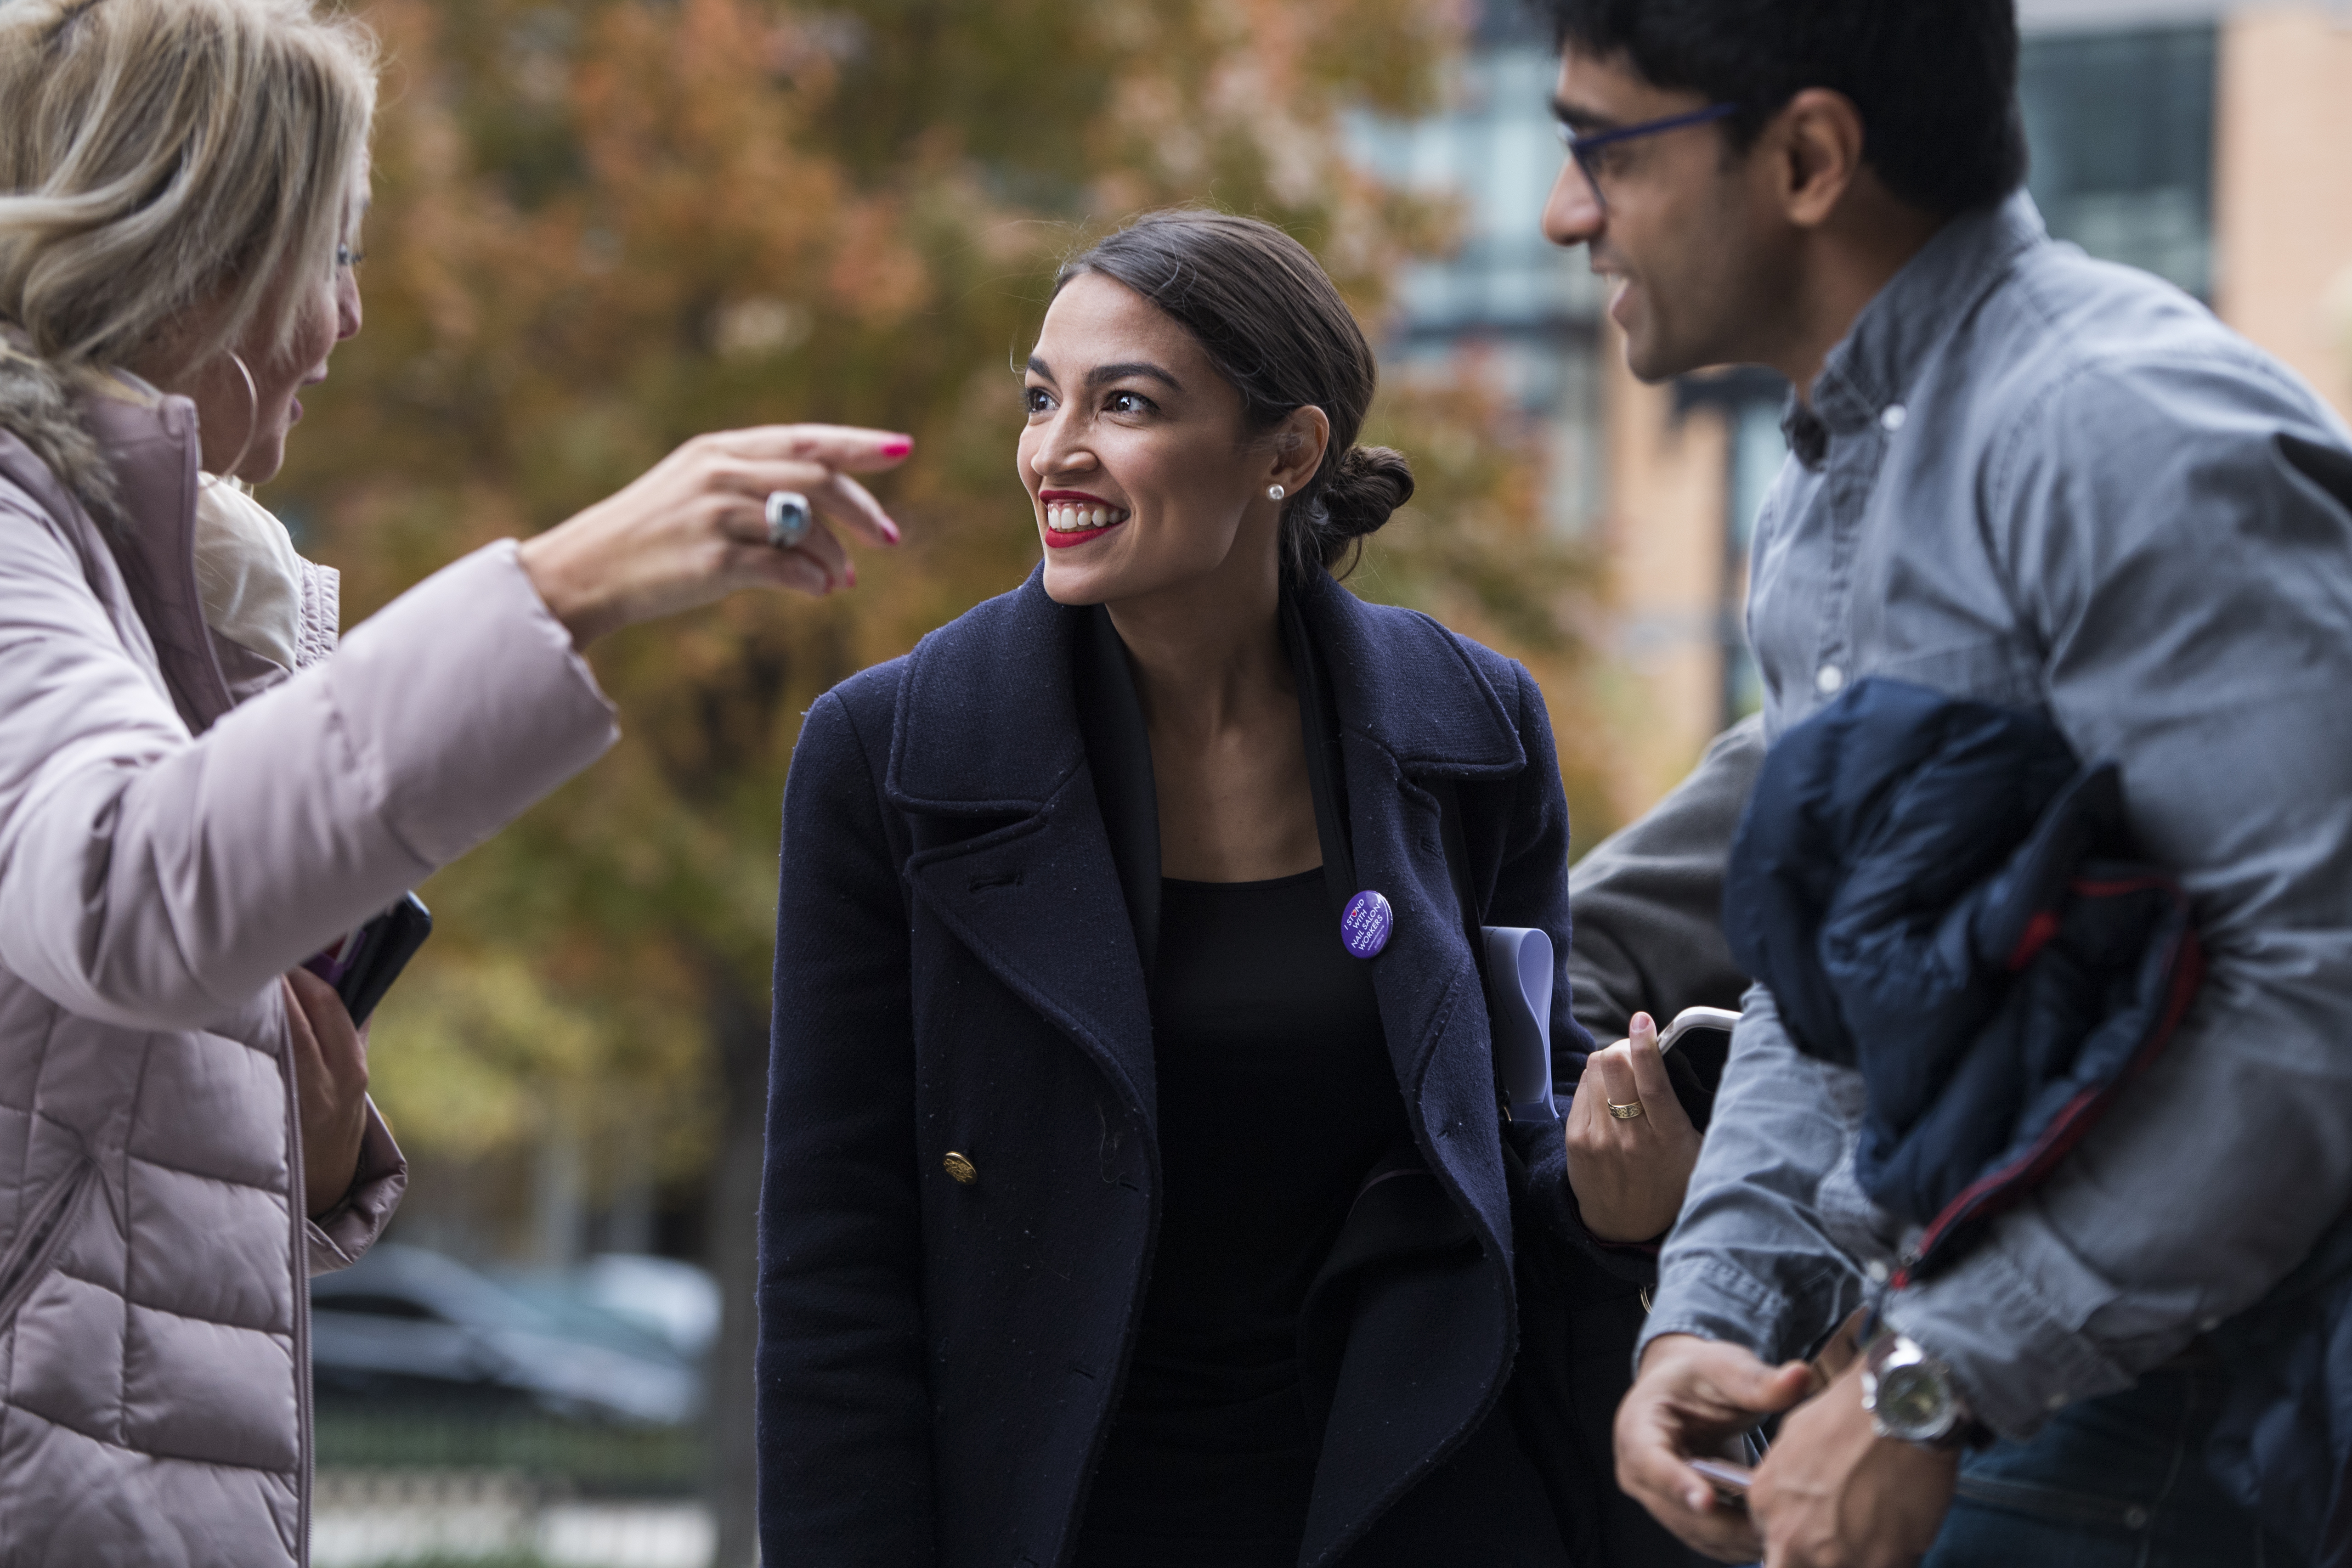 UNITED STATES - NOVEMBER 13: Rep.-elect Alexandria Ocasio-Cortez, D-N.Y., arrives for New Member Orientation at the Courtyard Marriott in SE, on November 13, 2018. (Photo By Tom Williams/CQ Roll Call)